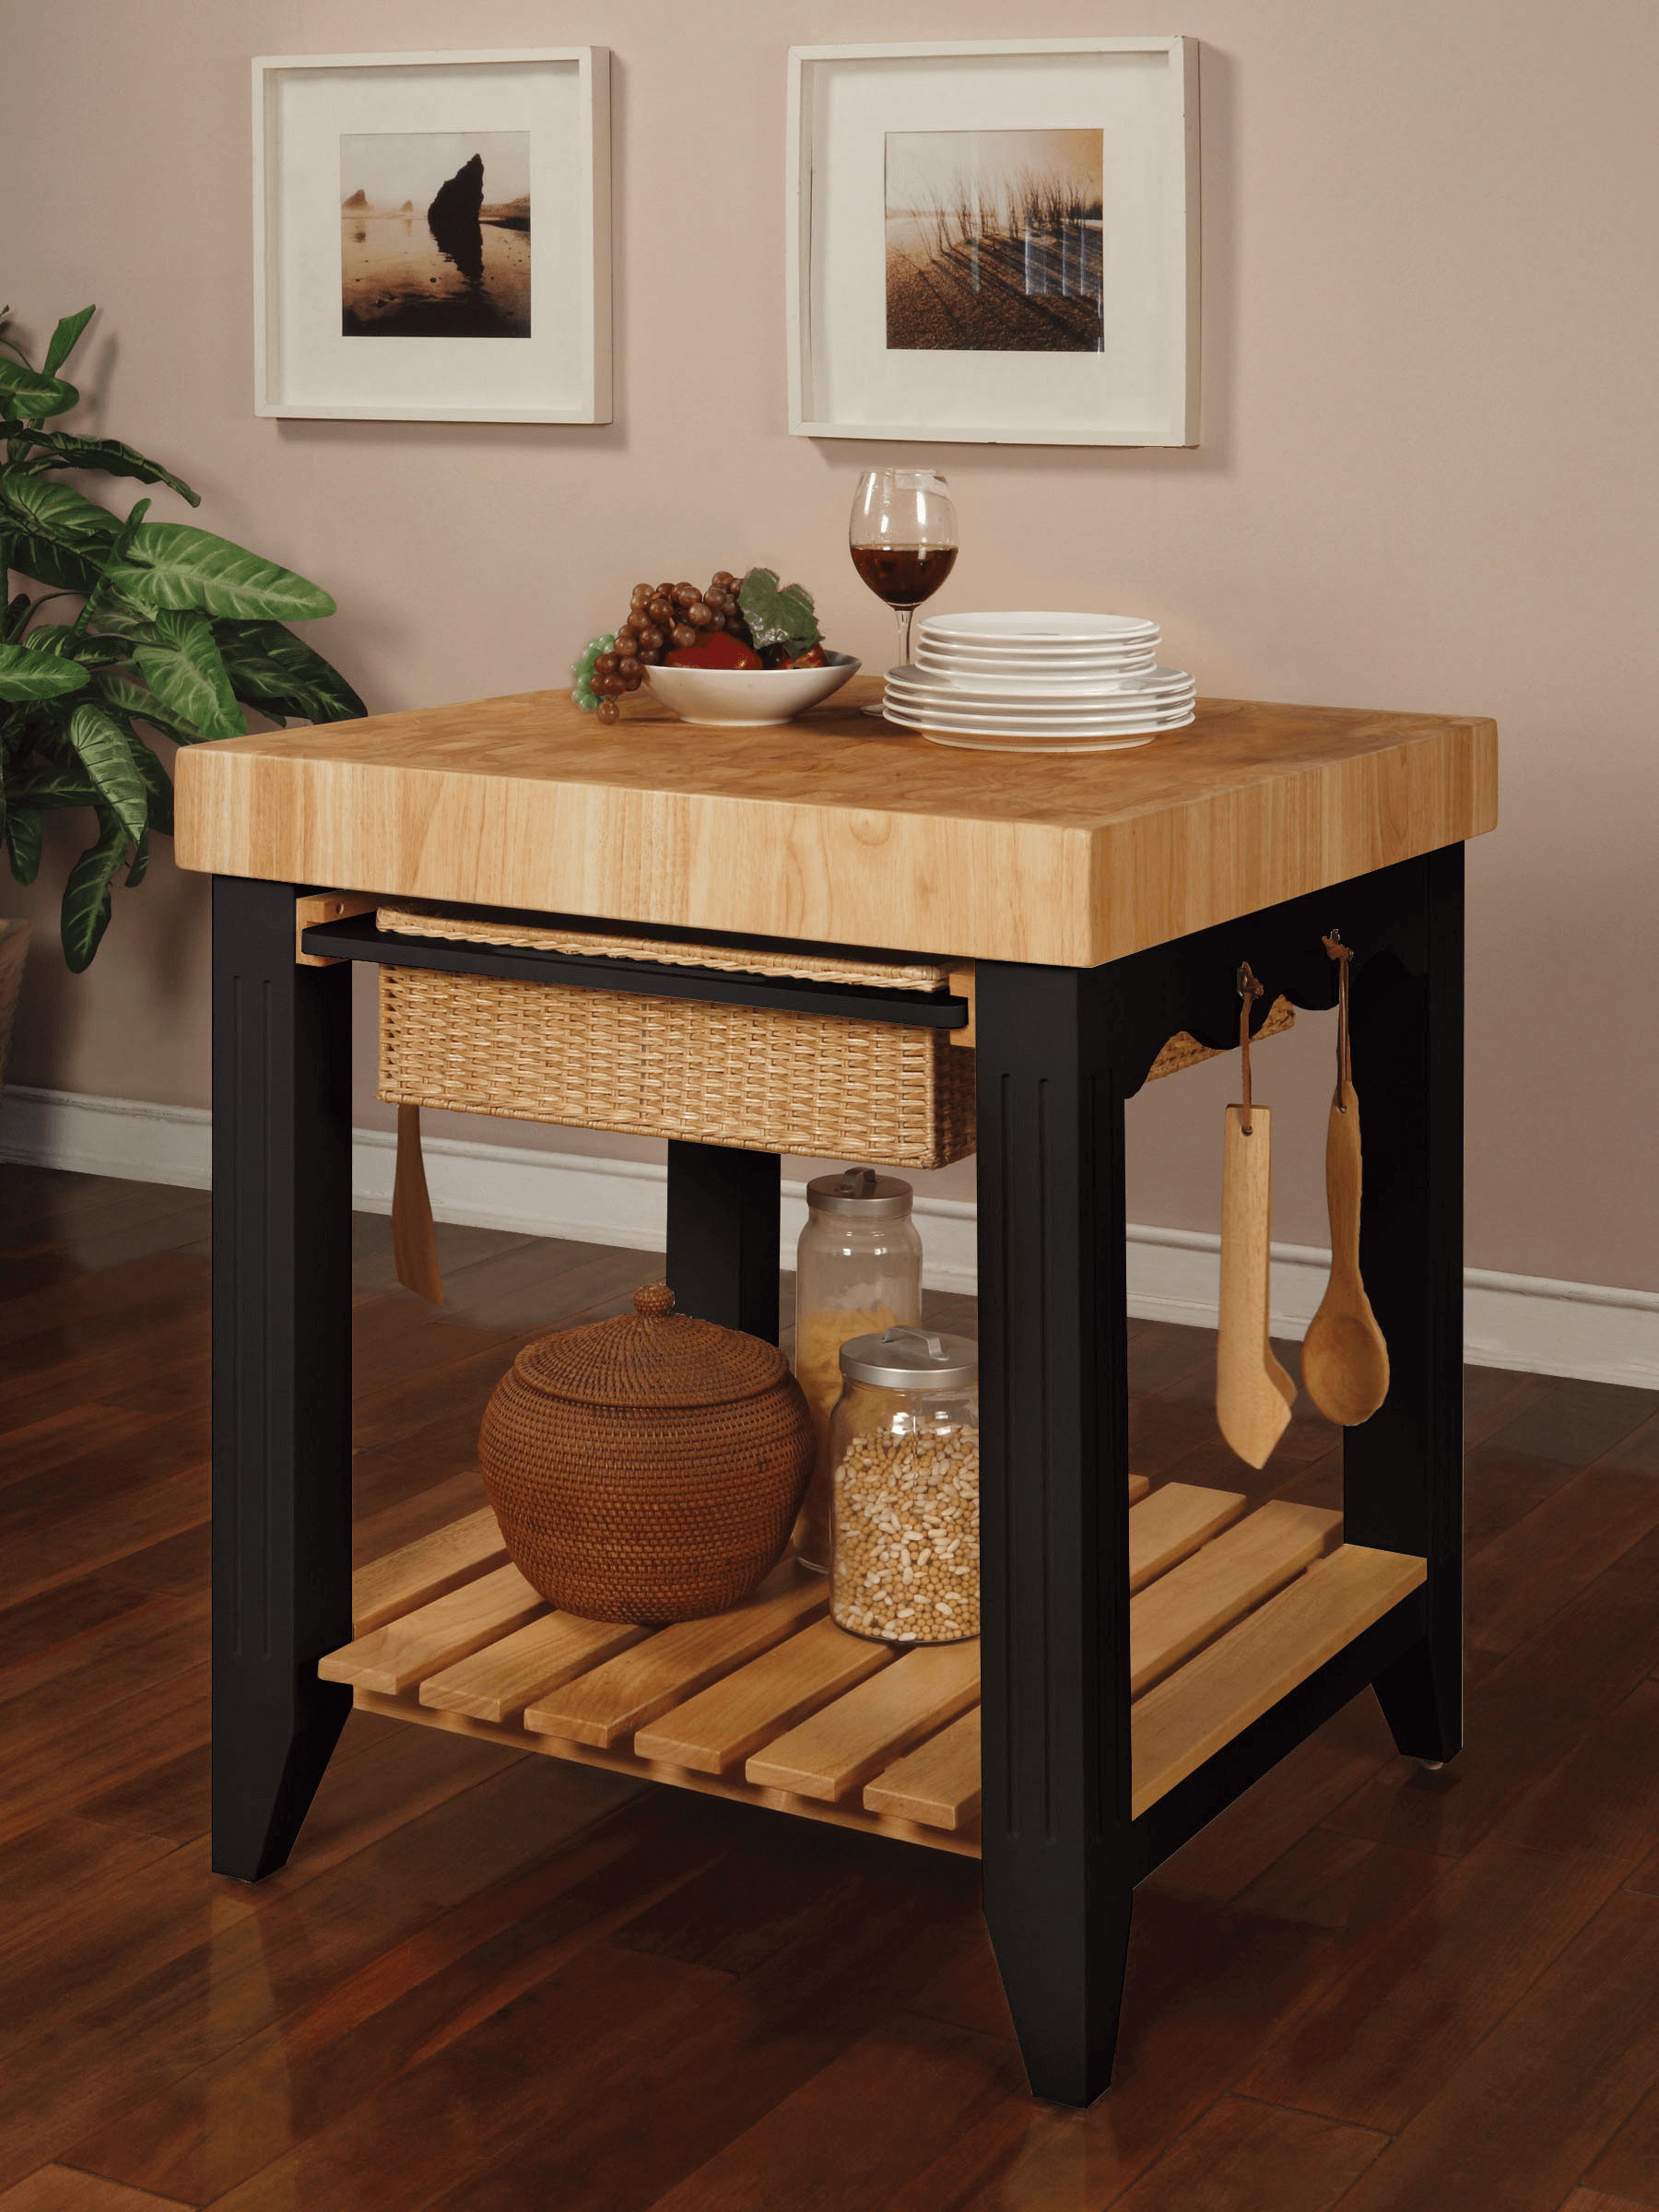 Know it better kitchen island butcher block - Small butcher block island ...